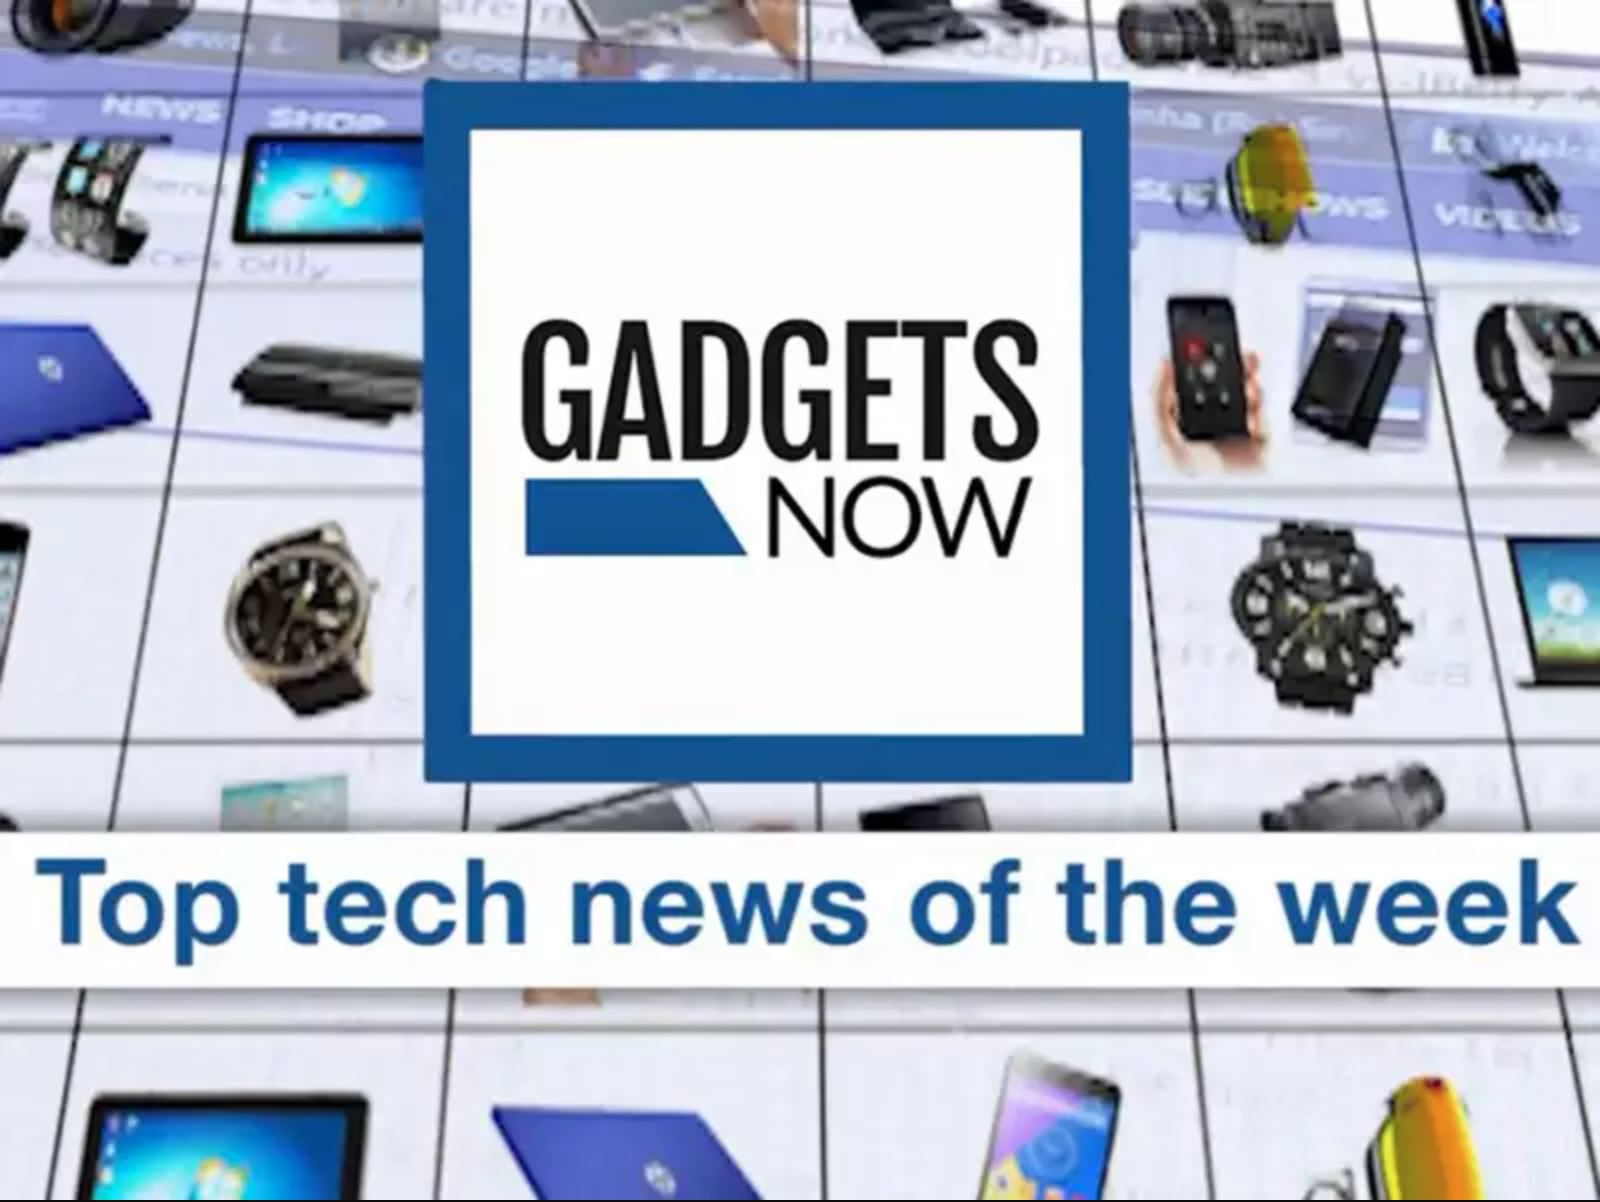 Samsung launches world's first phone with 4 rear cameras in India, Reliance Jio becomes the service provider for railways and other top tech news of the week